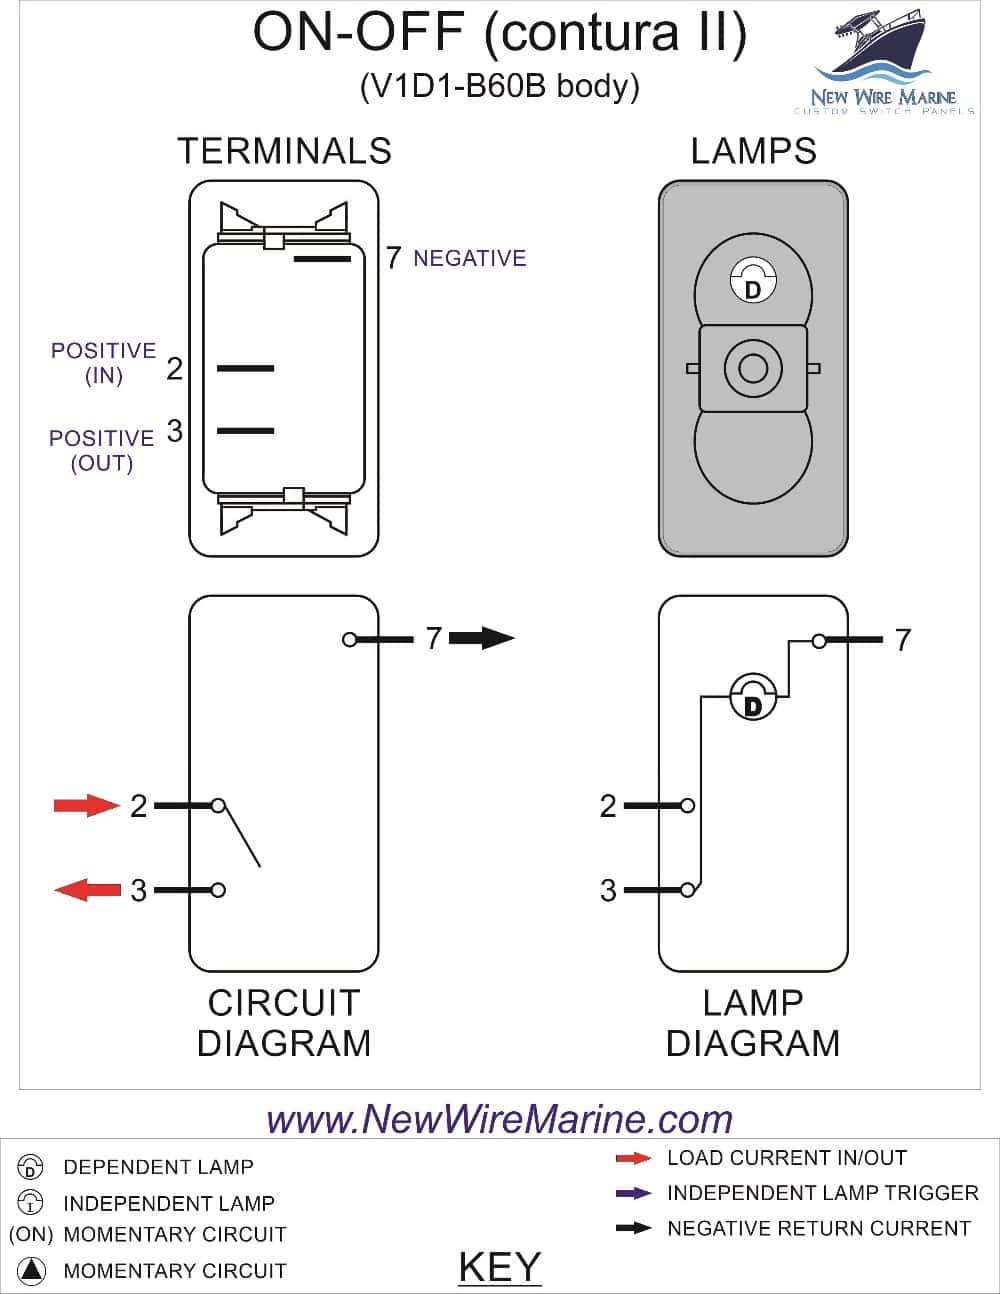 Prong Momentary Switch Wiring Diagrams on 5 prong switch wiring diagram, 3 prong switch wiring diagram, 2 prong switch wiring diagram,